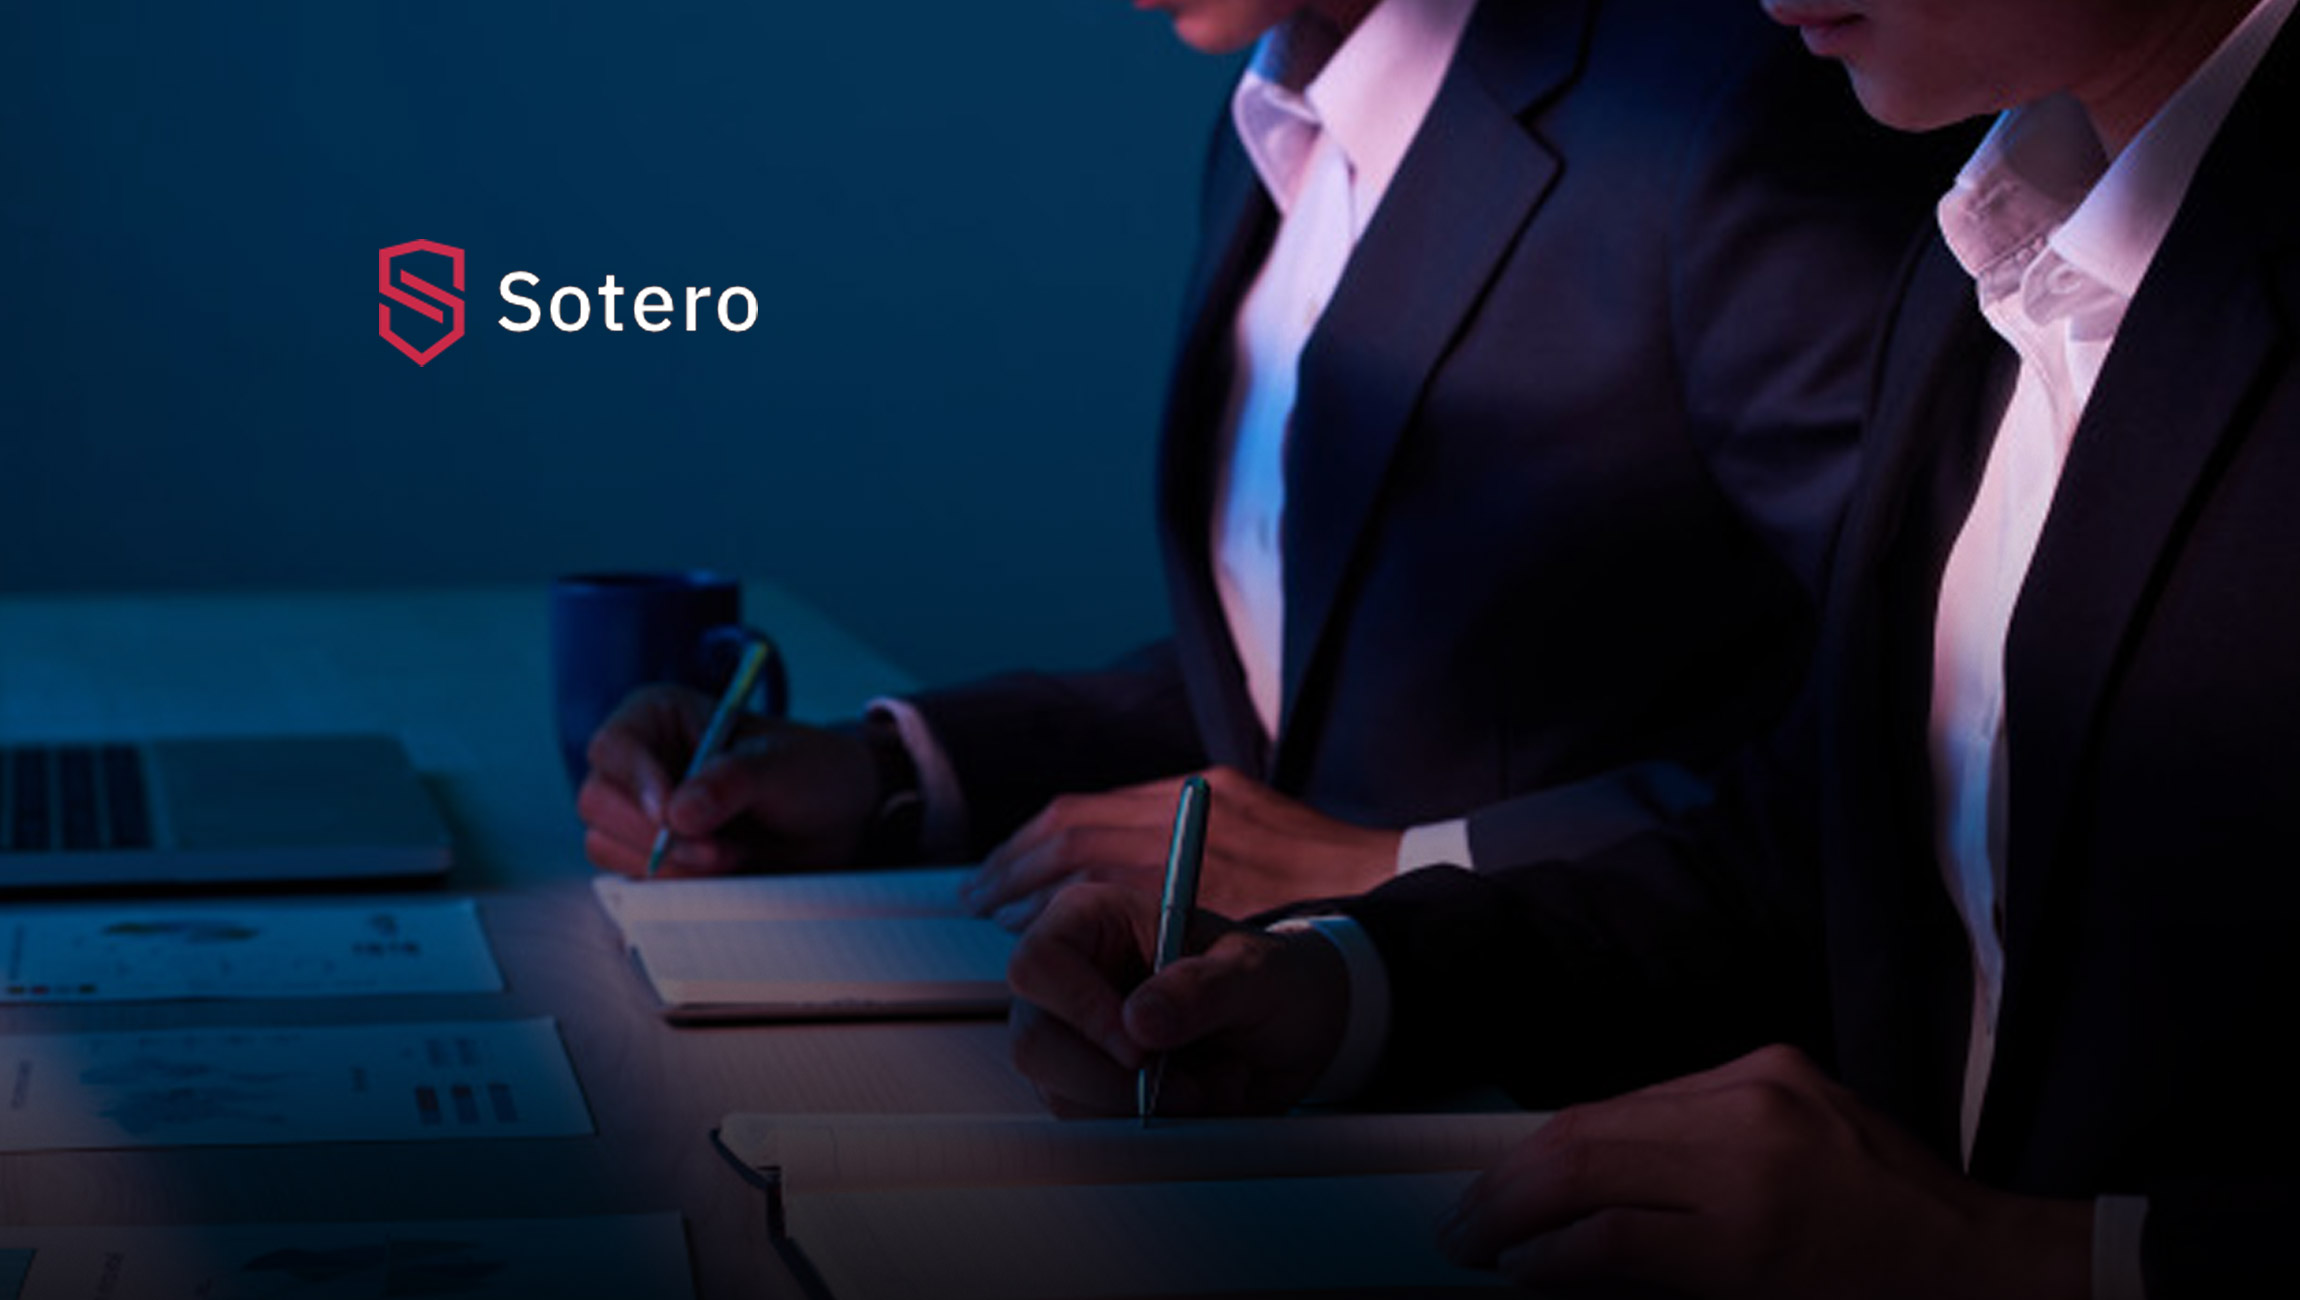 Data Protection Innovator Sotero Launches Sotero Opaque - the First Trusted Data-Sharing Solution for Complex Data Ecosystems and Sources